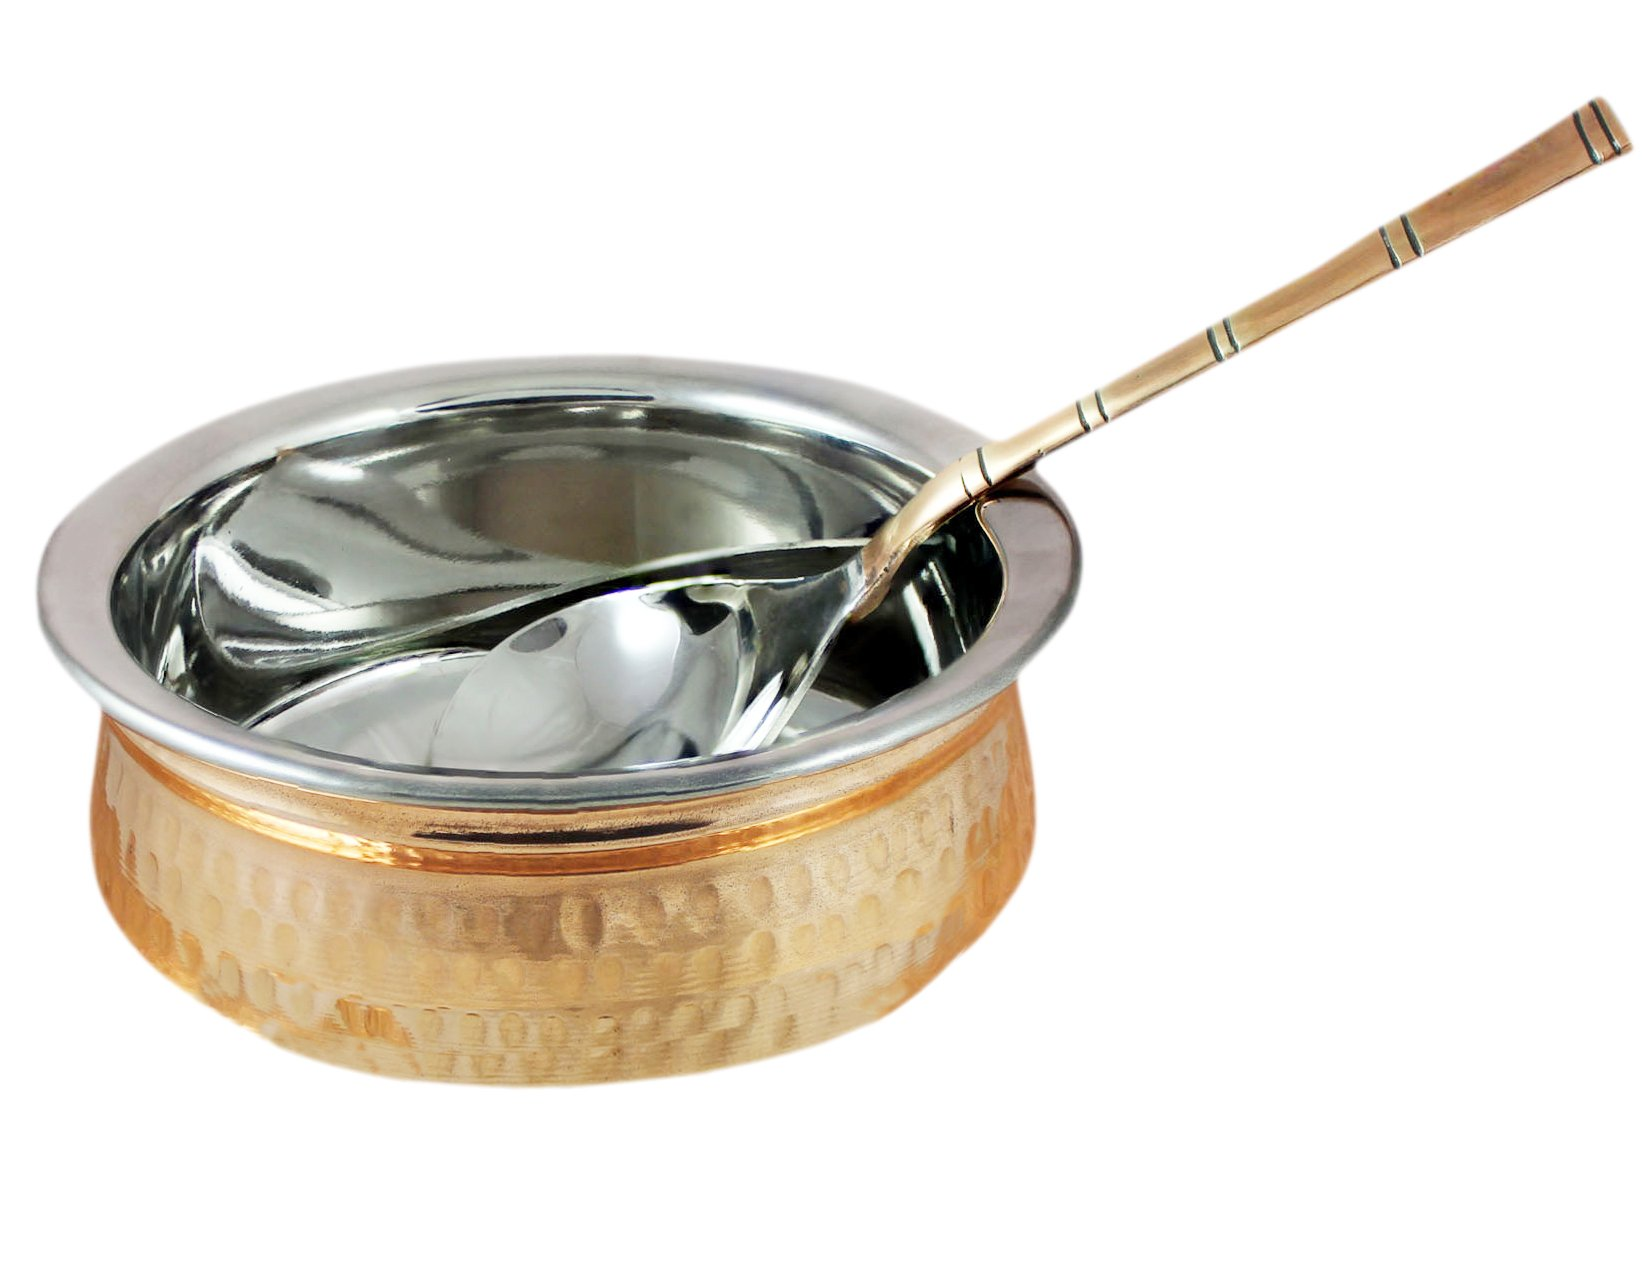 Copper Stainless Steel 34 OZ Serving Bowl with Spoon for Ice Cream, Noodles, Salad, Cereal, Rice, Pasta, Fruit, Dessert, Handmade Hammered Style Heat Insulated Double Walled Multipurpose Bowl, 7 Inch